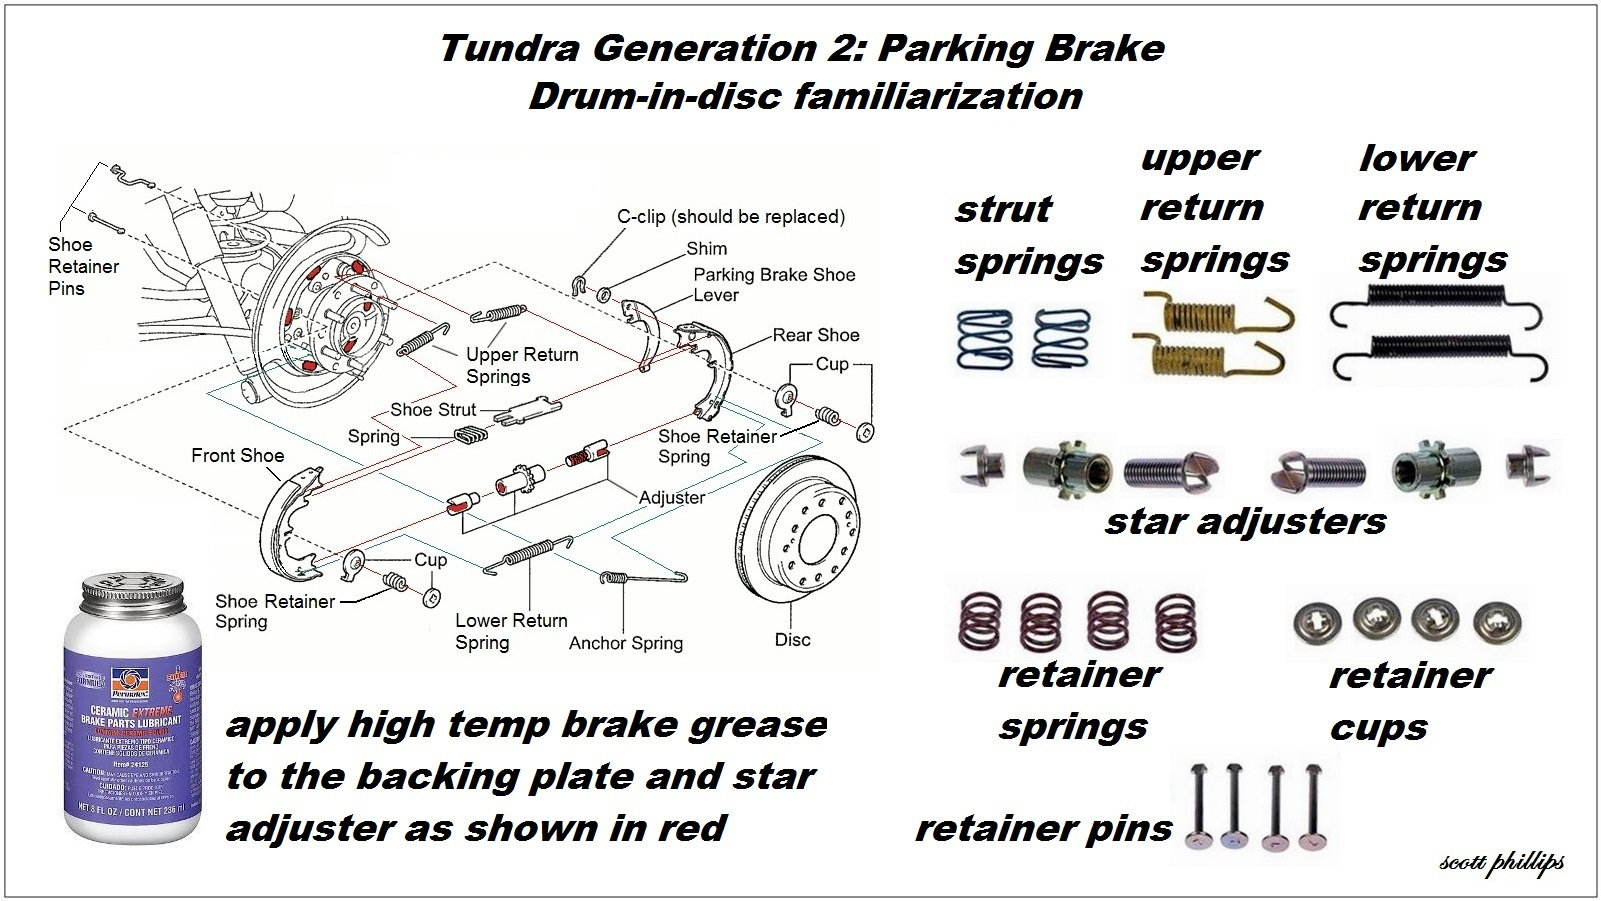 2001 Toyota Tundra Transmission Diagram Trusted Wiring Diagrams Sequoia 2002 4 7 Engine Smart U2022 Suspension